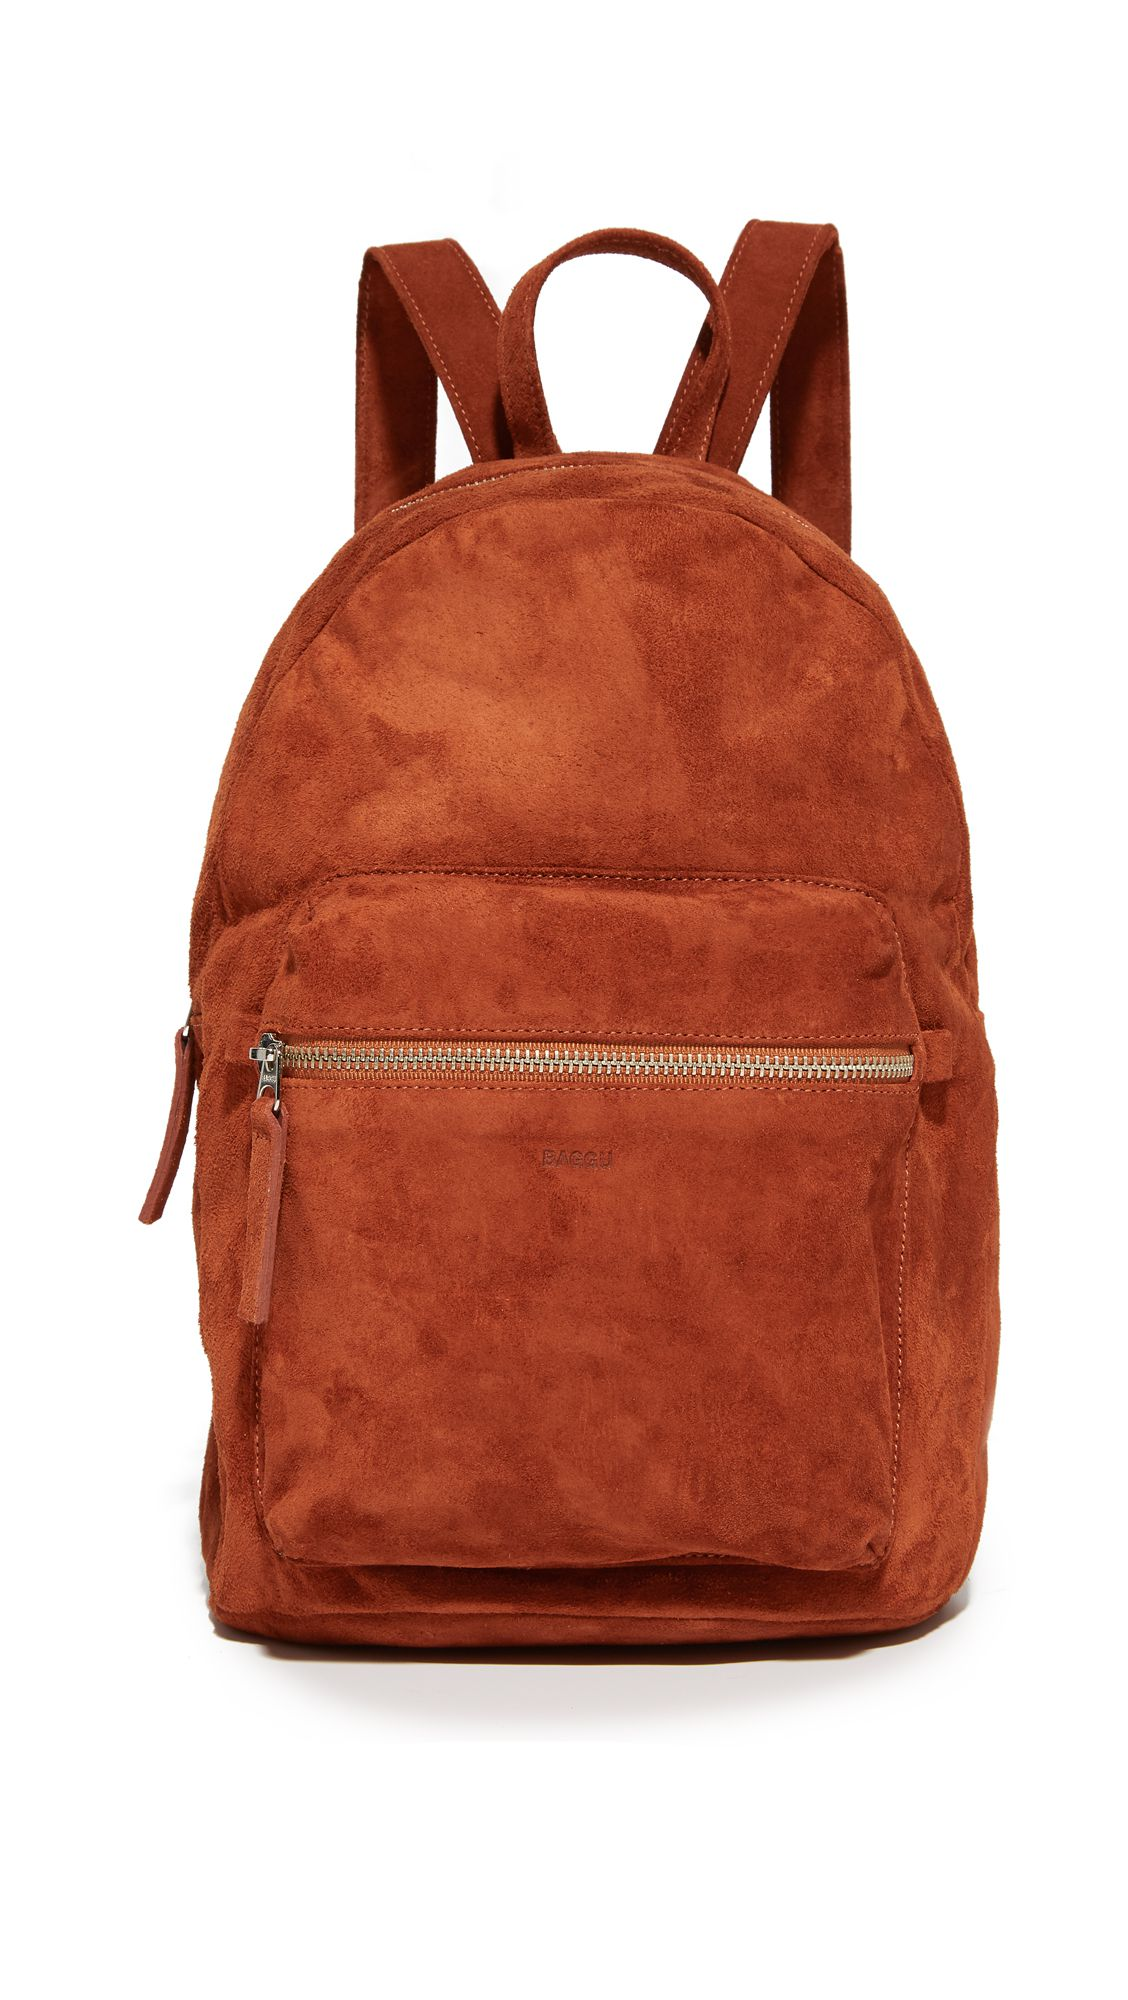 A rust colored suede backpack